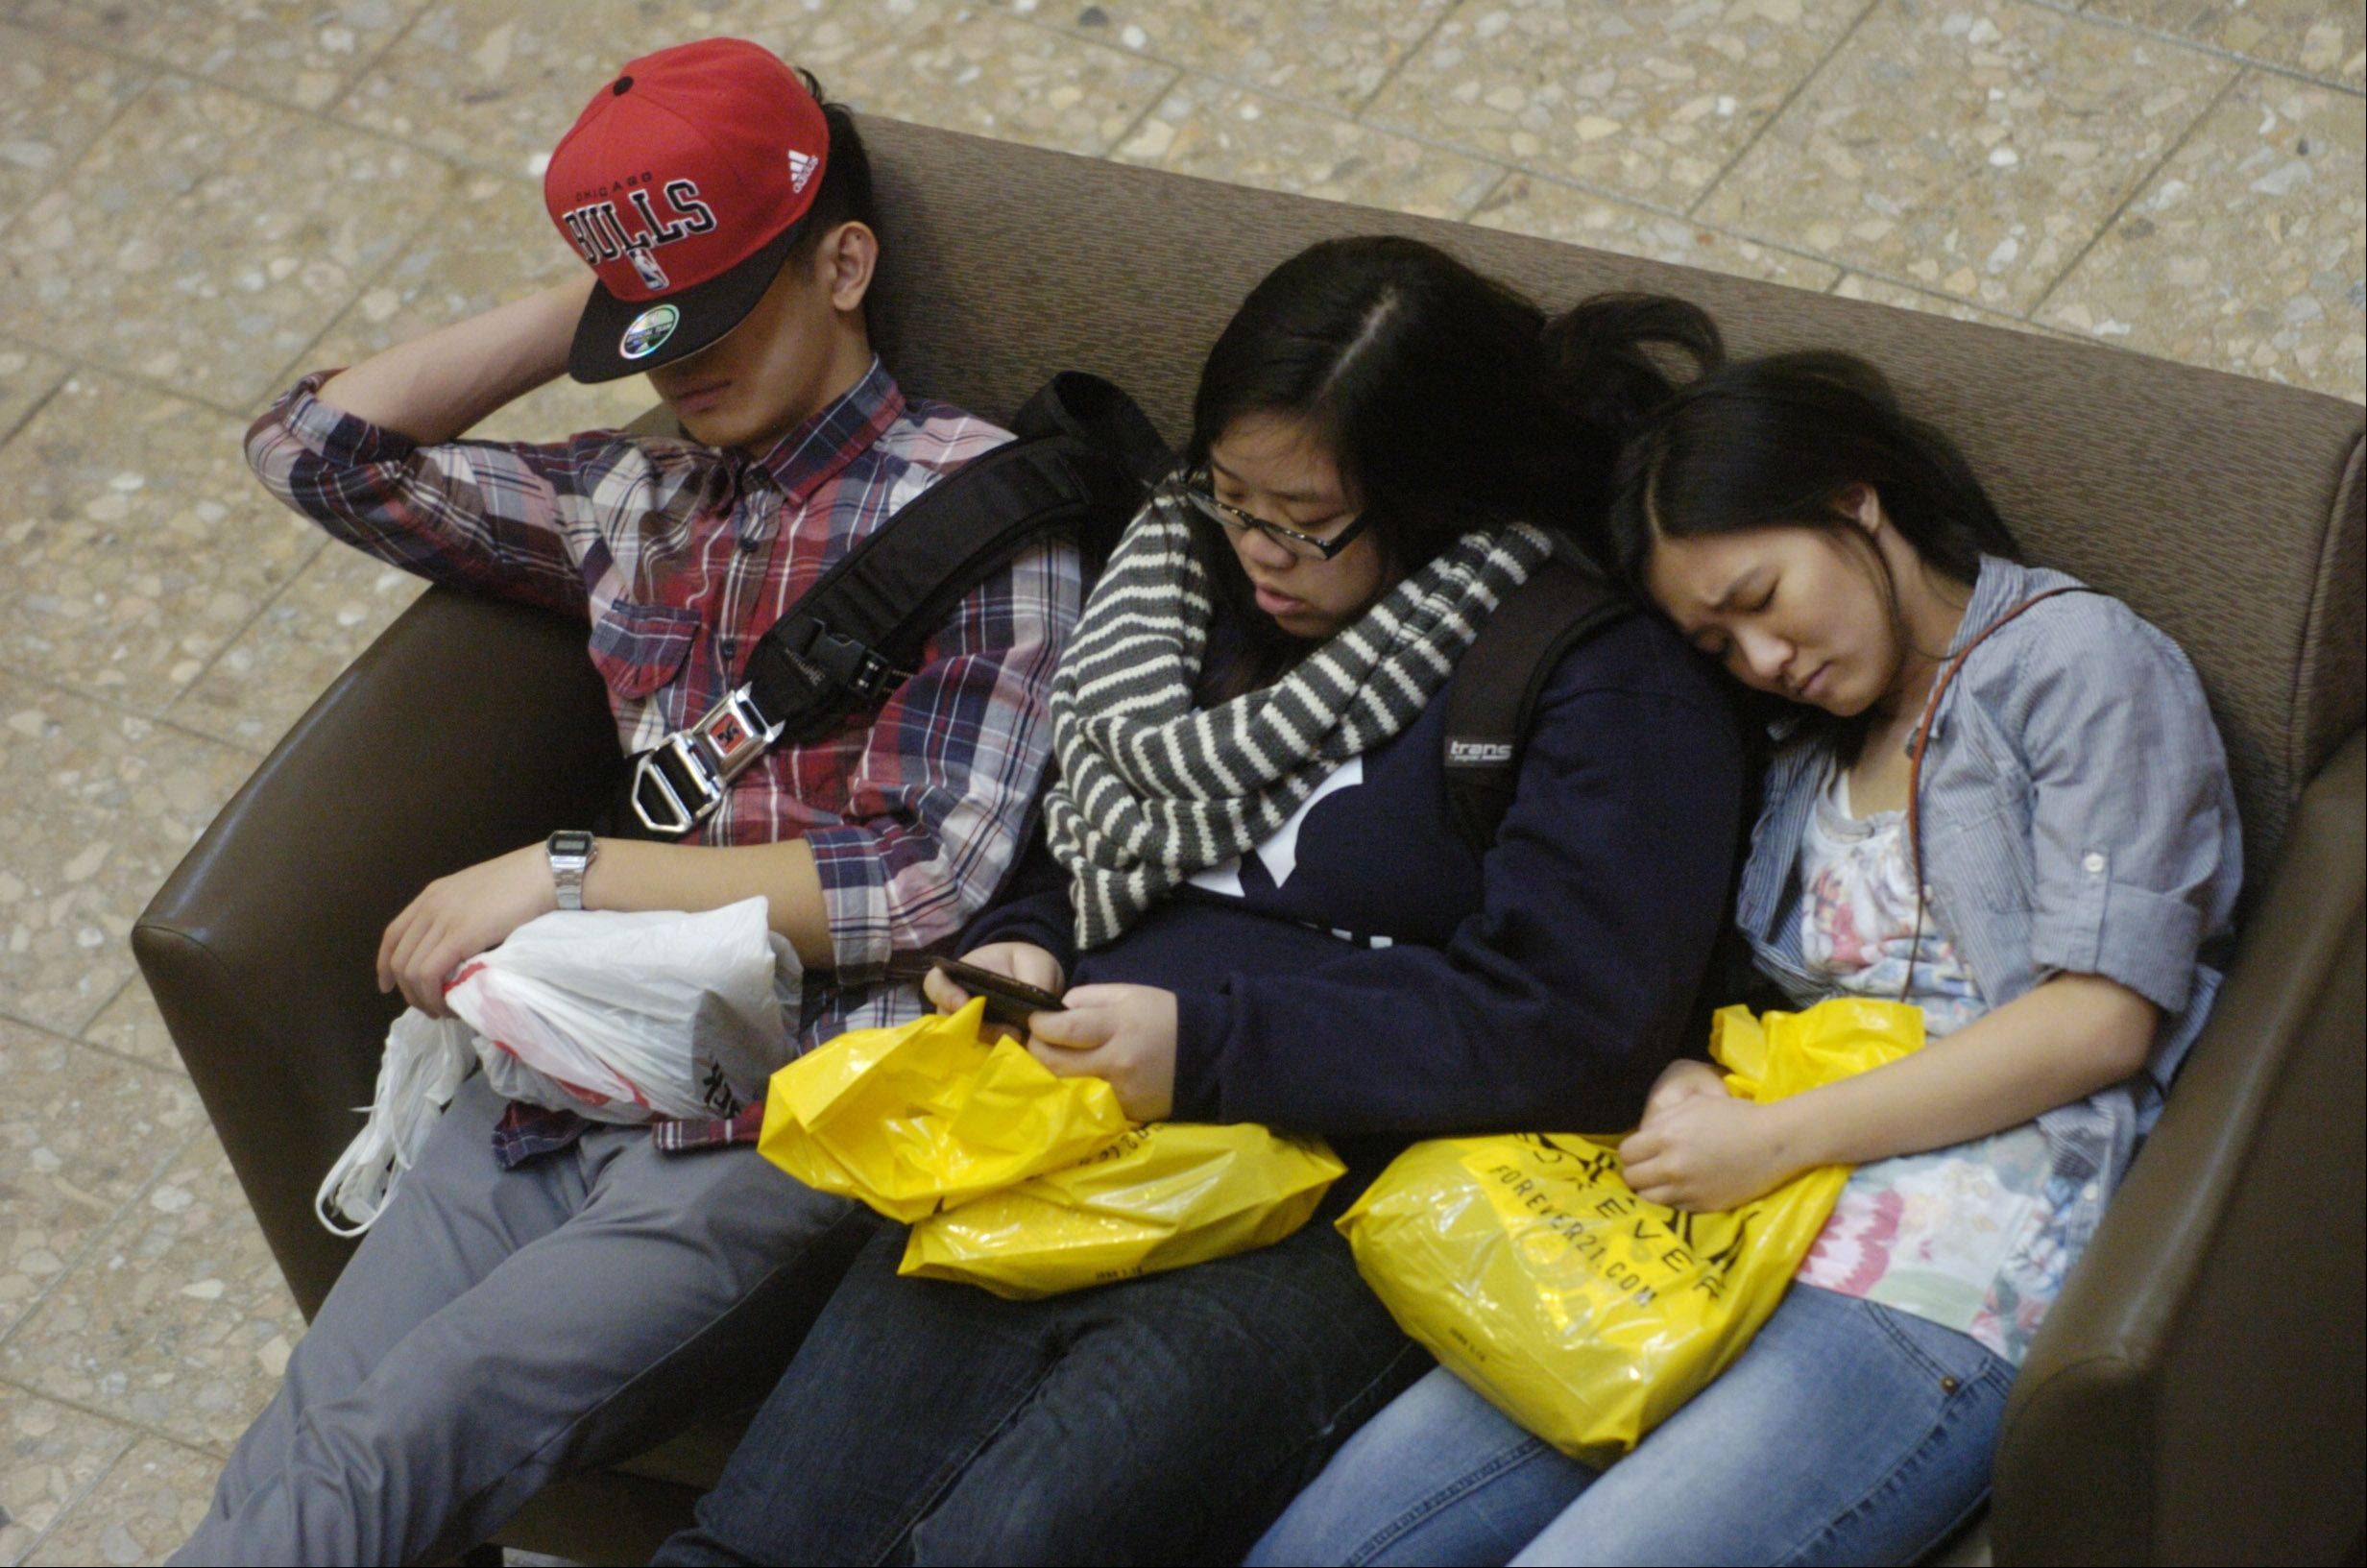 Shoppers relax on the couch outside of Macy's at Woodfield Mall in Schaumburg during the morning of Black Friday.